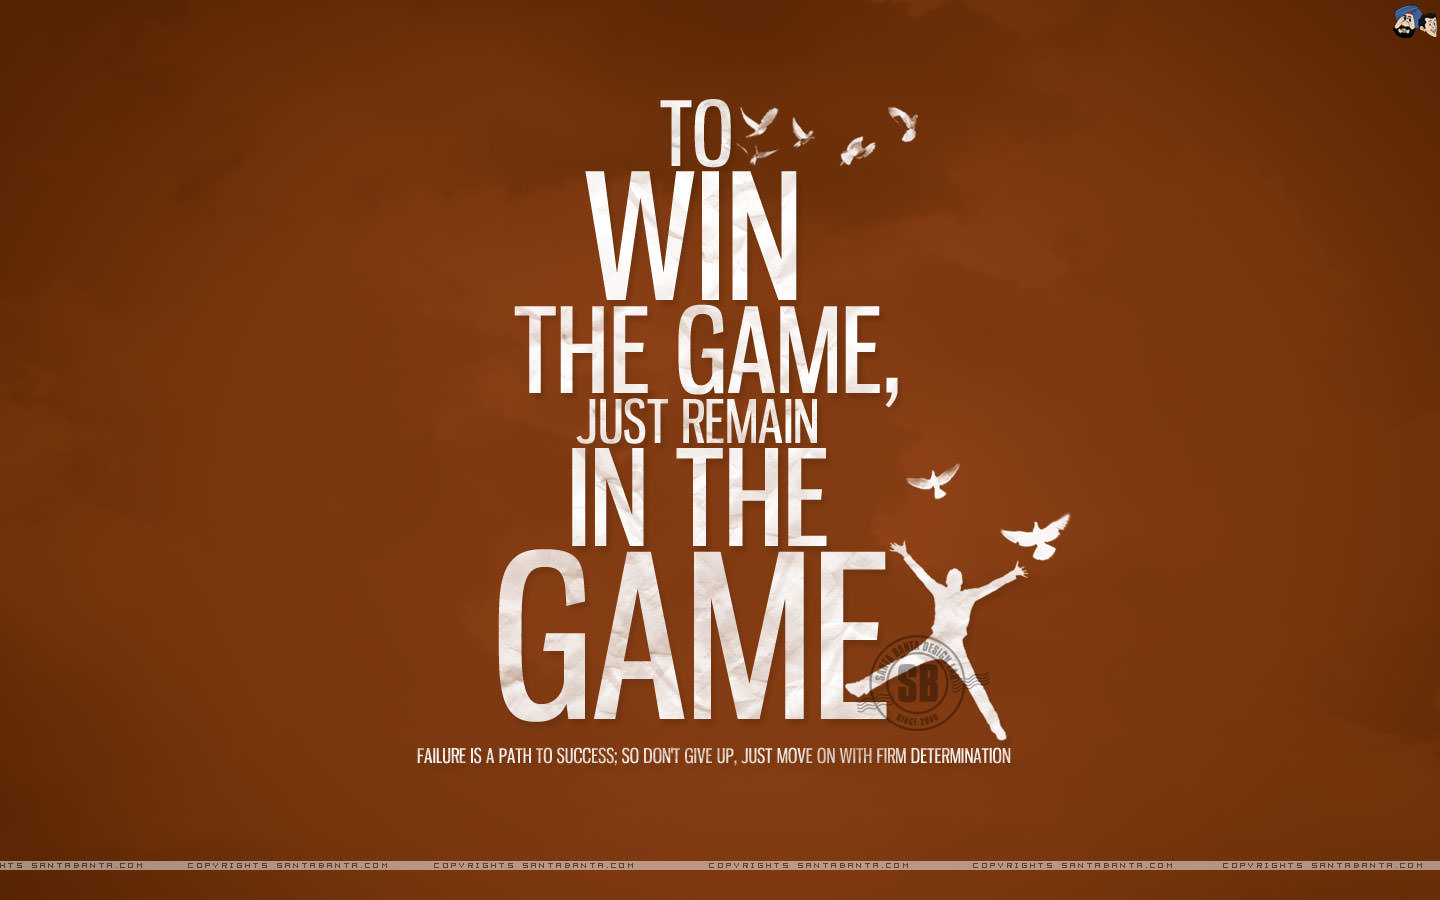 Sport Quotes Iphone Wallpaper: To Win The Game, Just Remain In The Game. Failure Is A